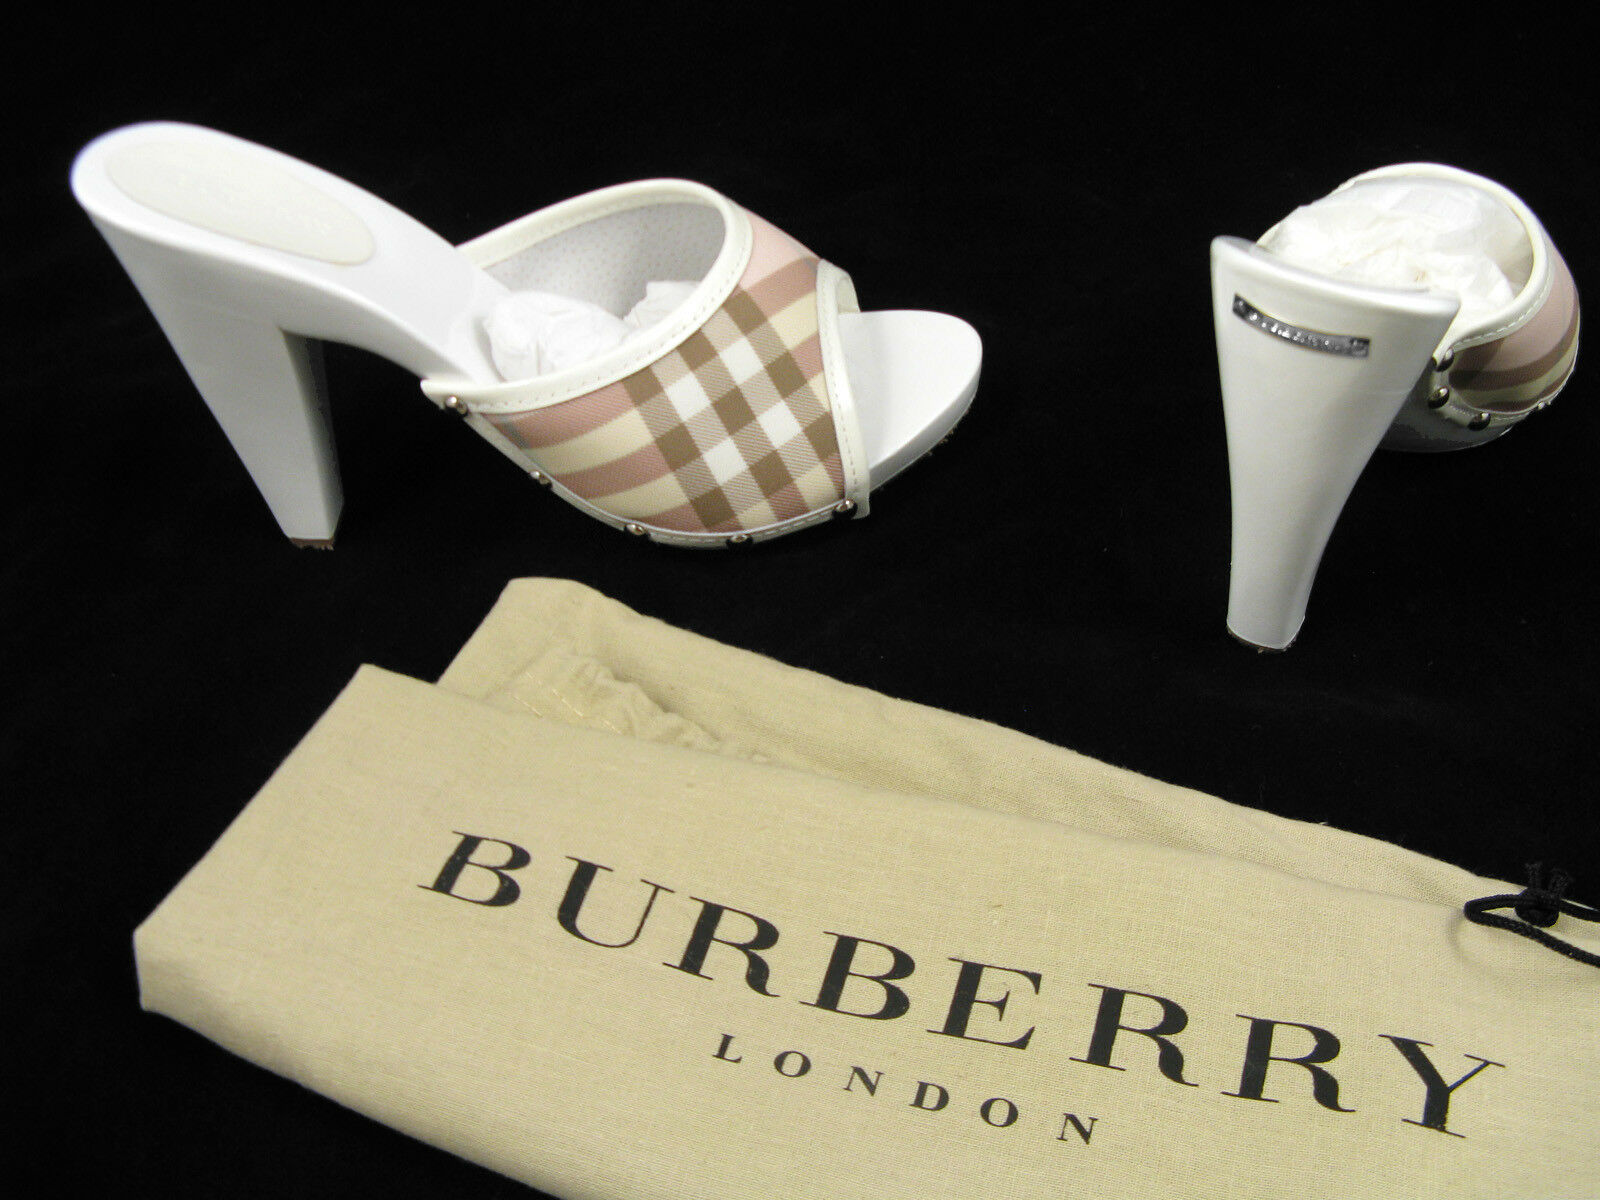 NEW Burberry Shastrid shoes (Mules) (Slides)  US 7 Euro 37 White with Pink Check